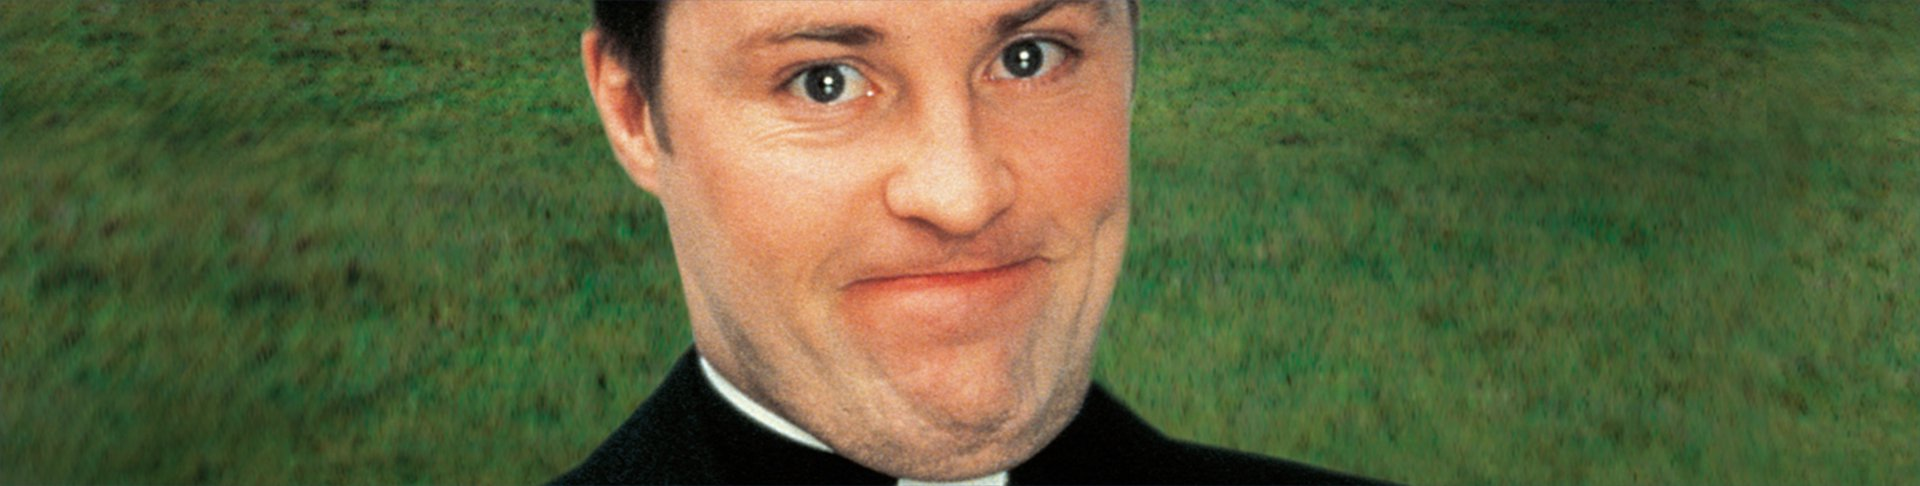 watch father ted online stream seasons 1 3 now stan